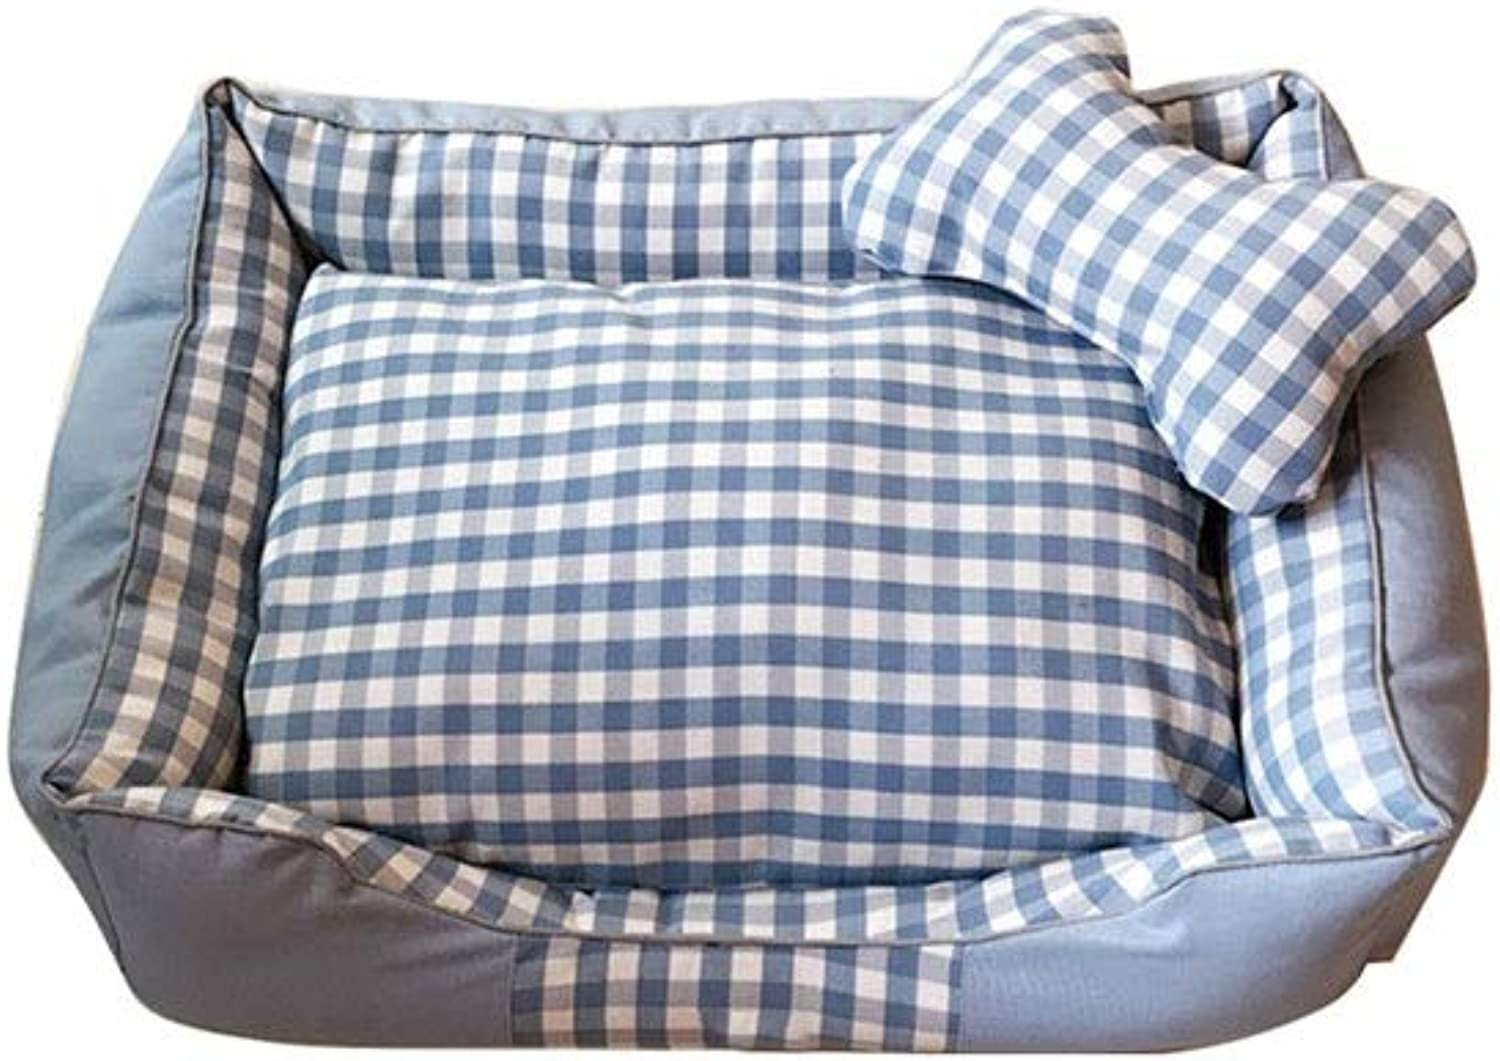 Alapet Four Seasons Dog Bed, bluee Plaid Washable Dog Bed, Facade and Back Two Styles of Dog Beds Cushions, Five, Suitable for Dogs from 2.5 KG to 50 KG, Non-Slip Design (Size   M)